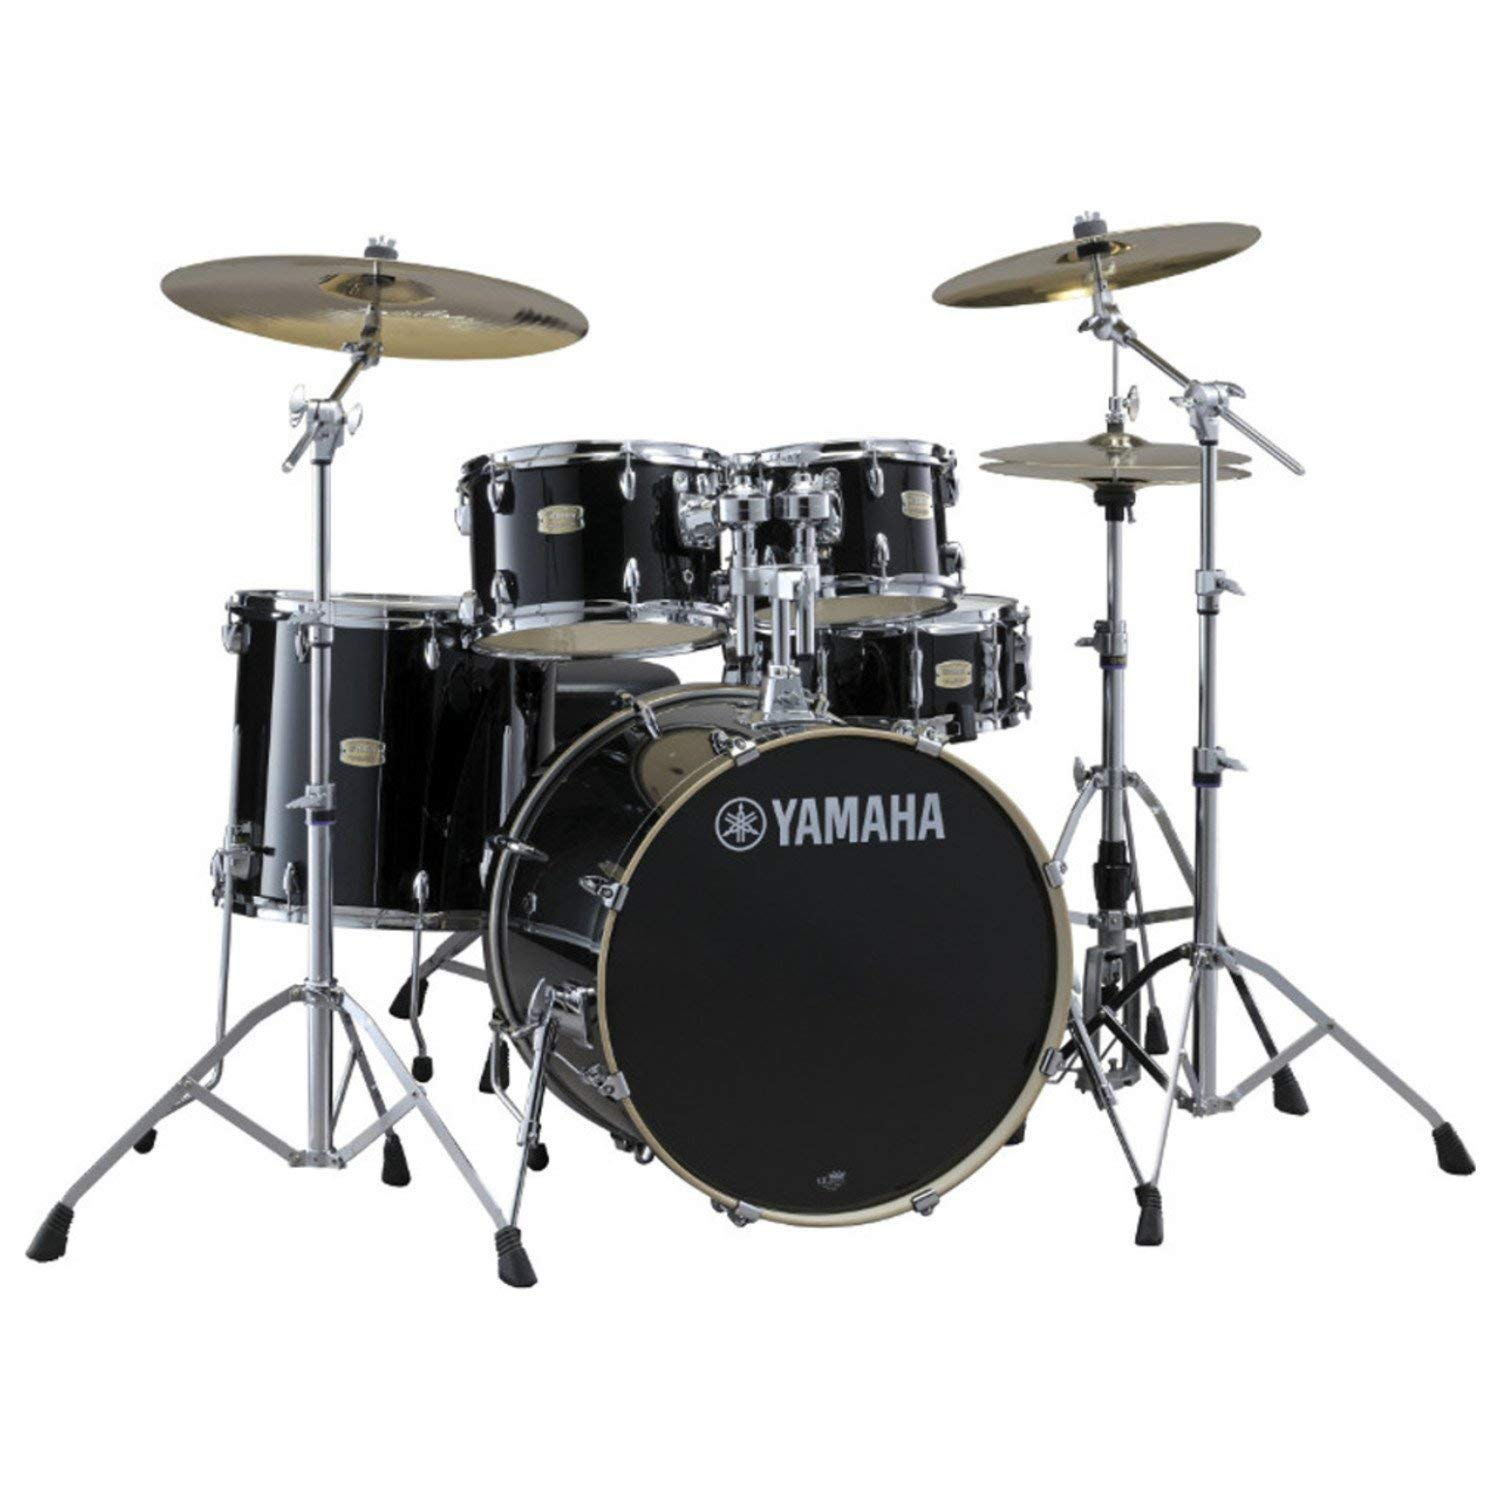 drum set brands to avoid